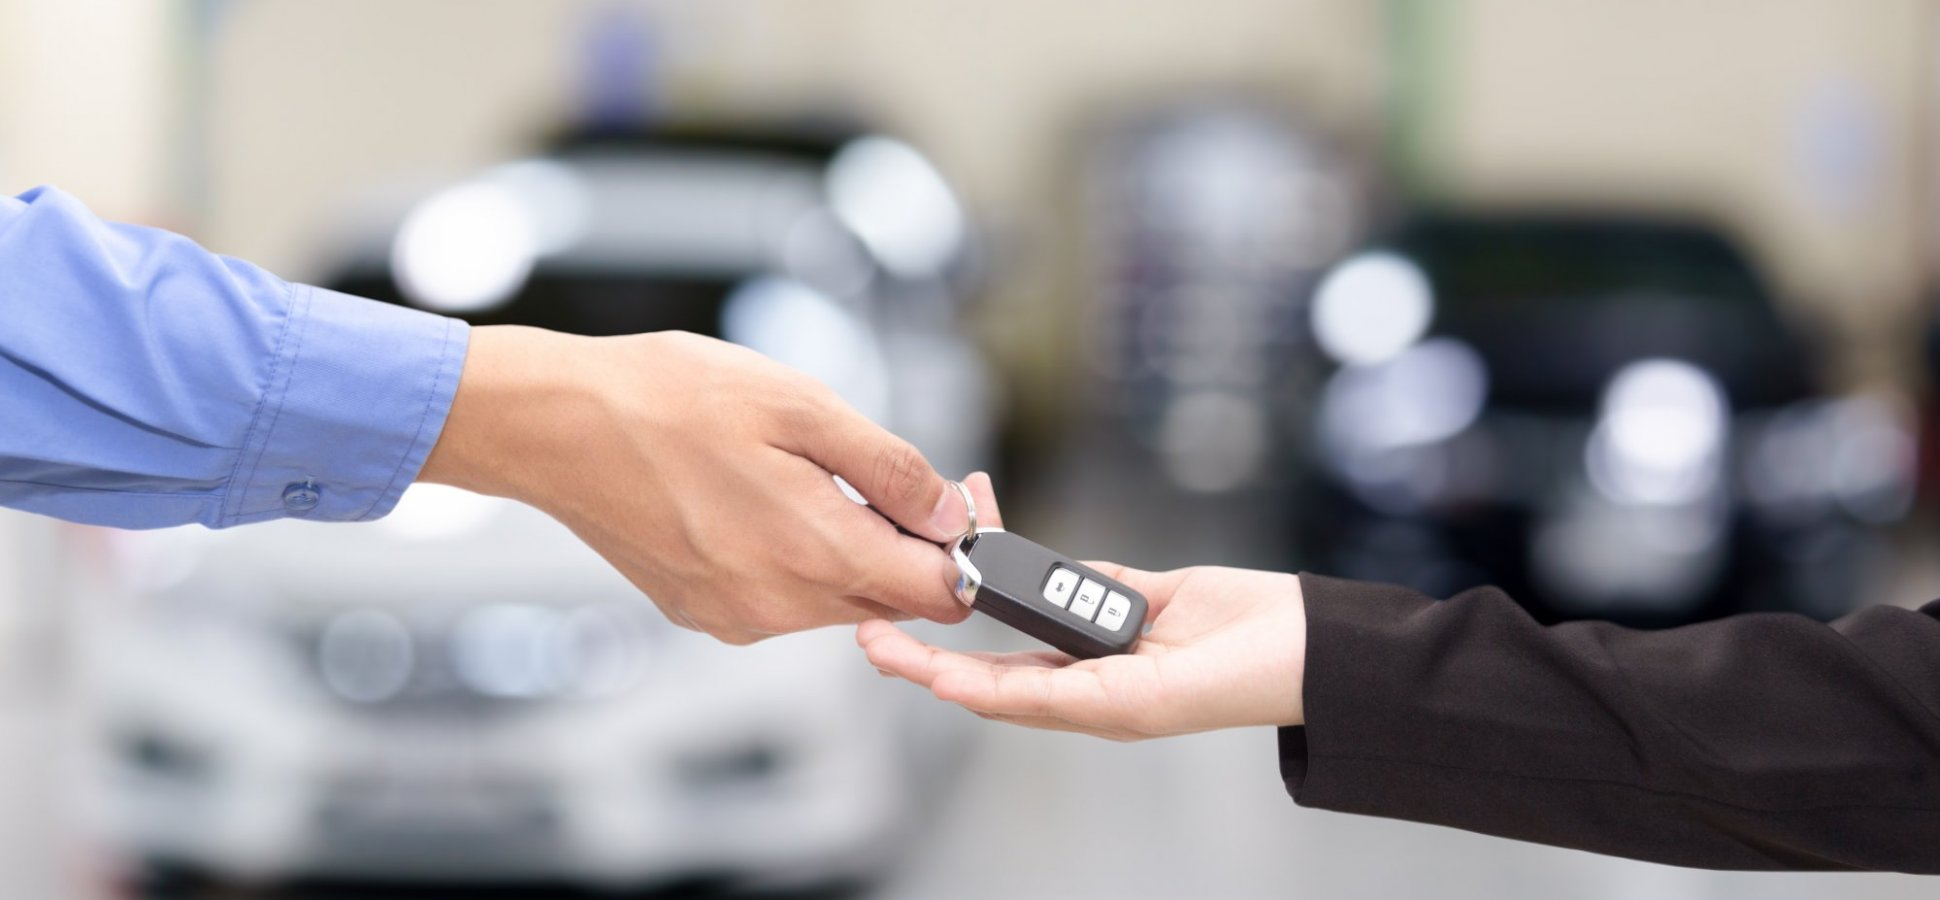 Renting a Car During Your Business Travels? Here Are a Few Things to Know